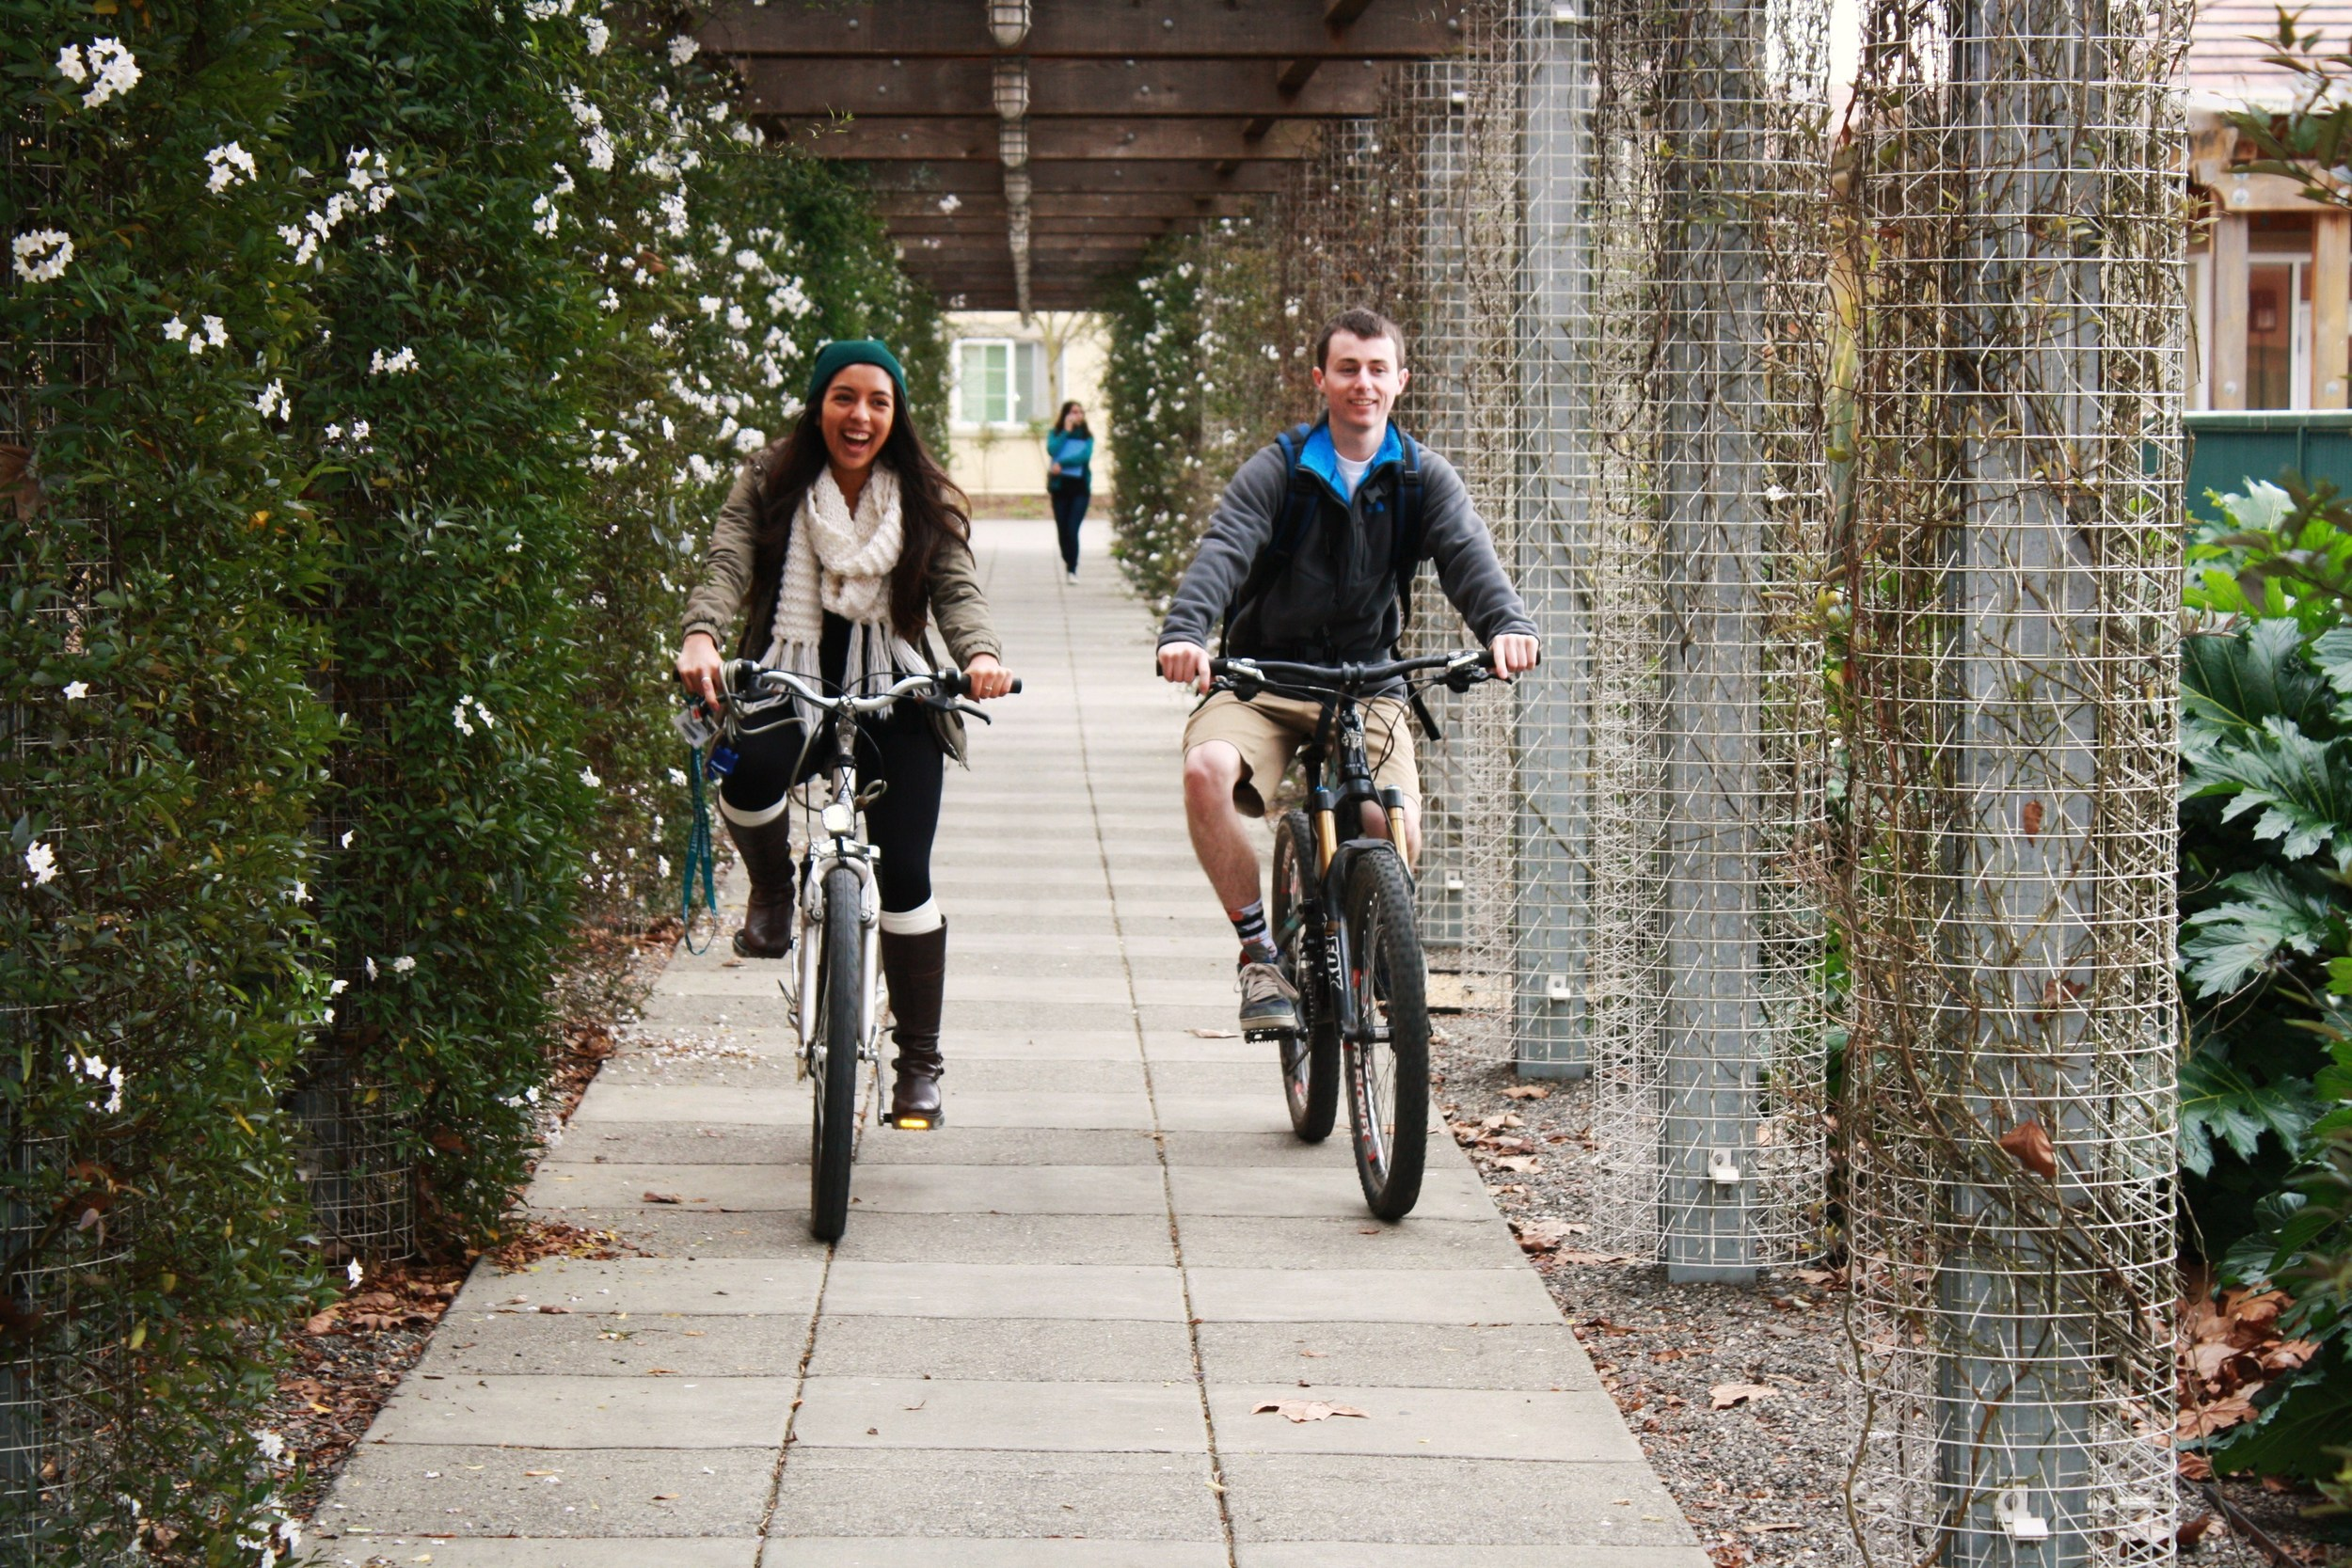 STAR // Niquie Wilson   Breanna Pereira, 19, rides her bike home with her friend Josh Krisman, 20 on Thursday.